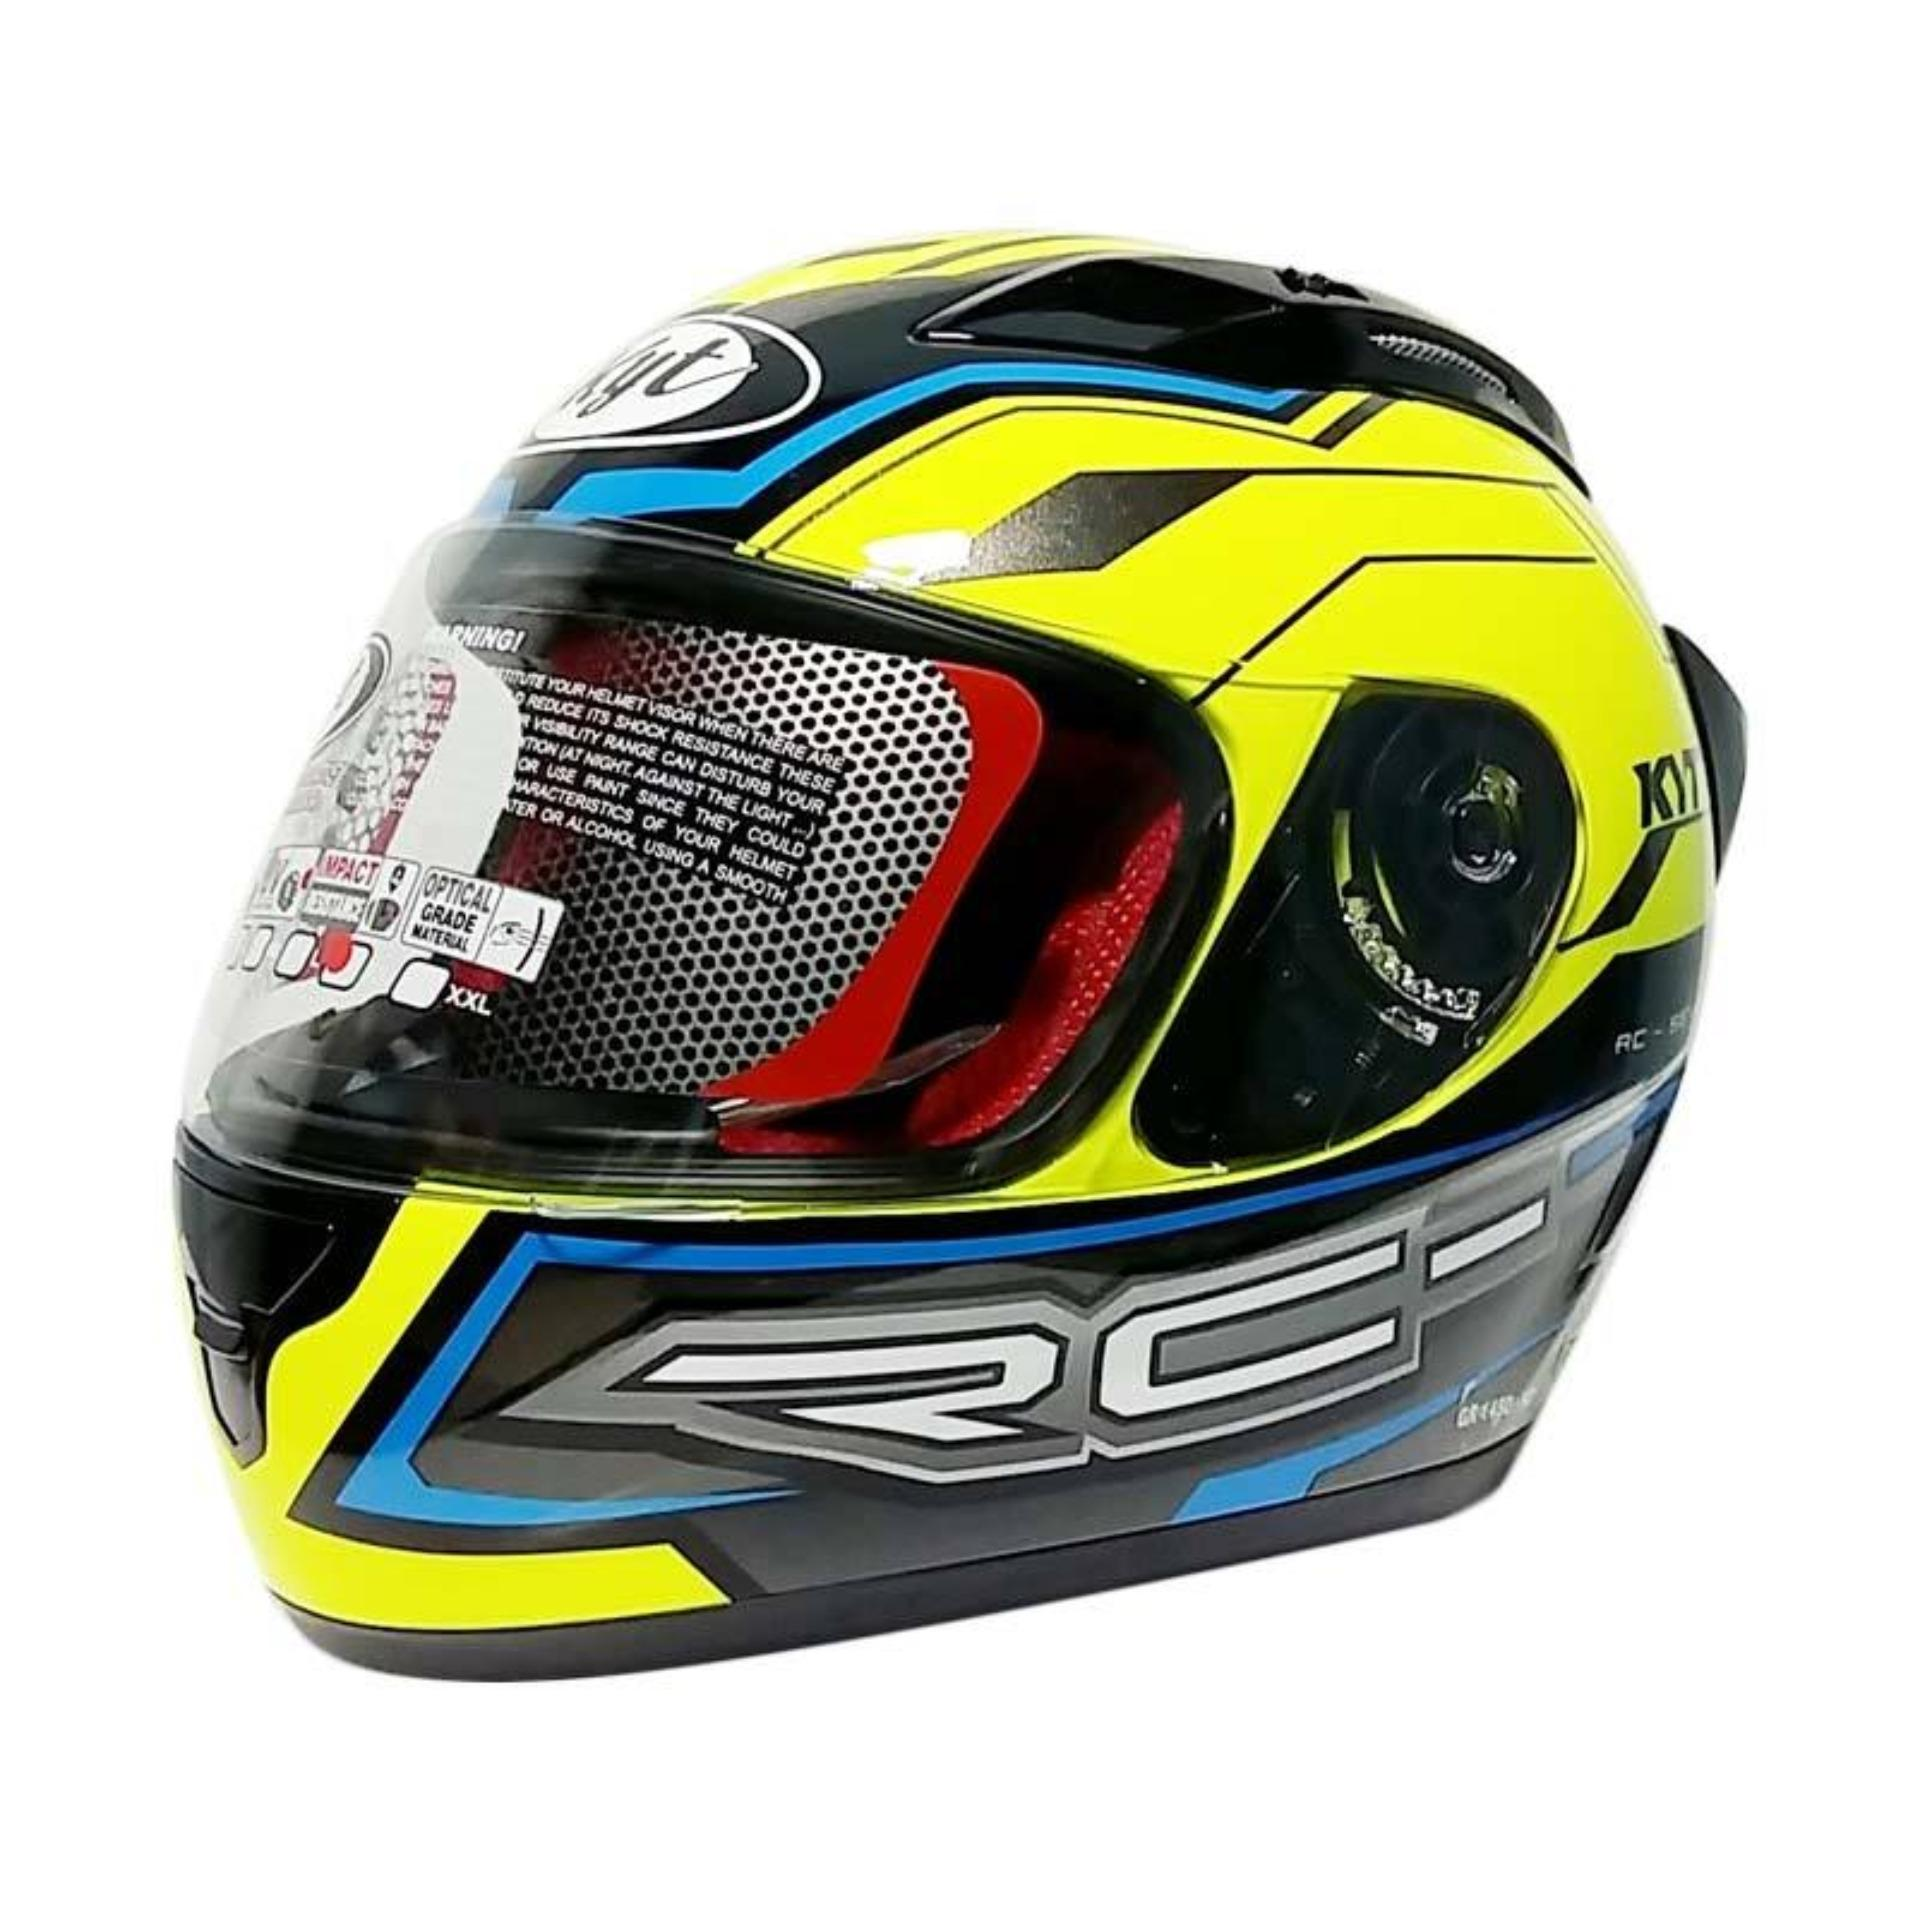 Toko Kyt Rc Seven 14 Helm Full Face Yellow Blue Black Online Terpercaya